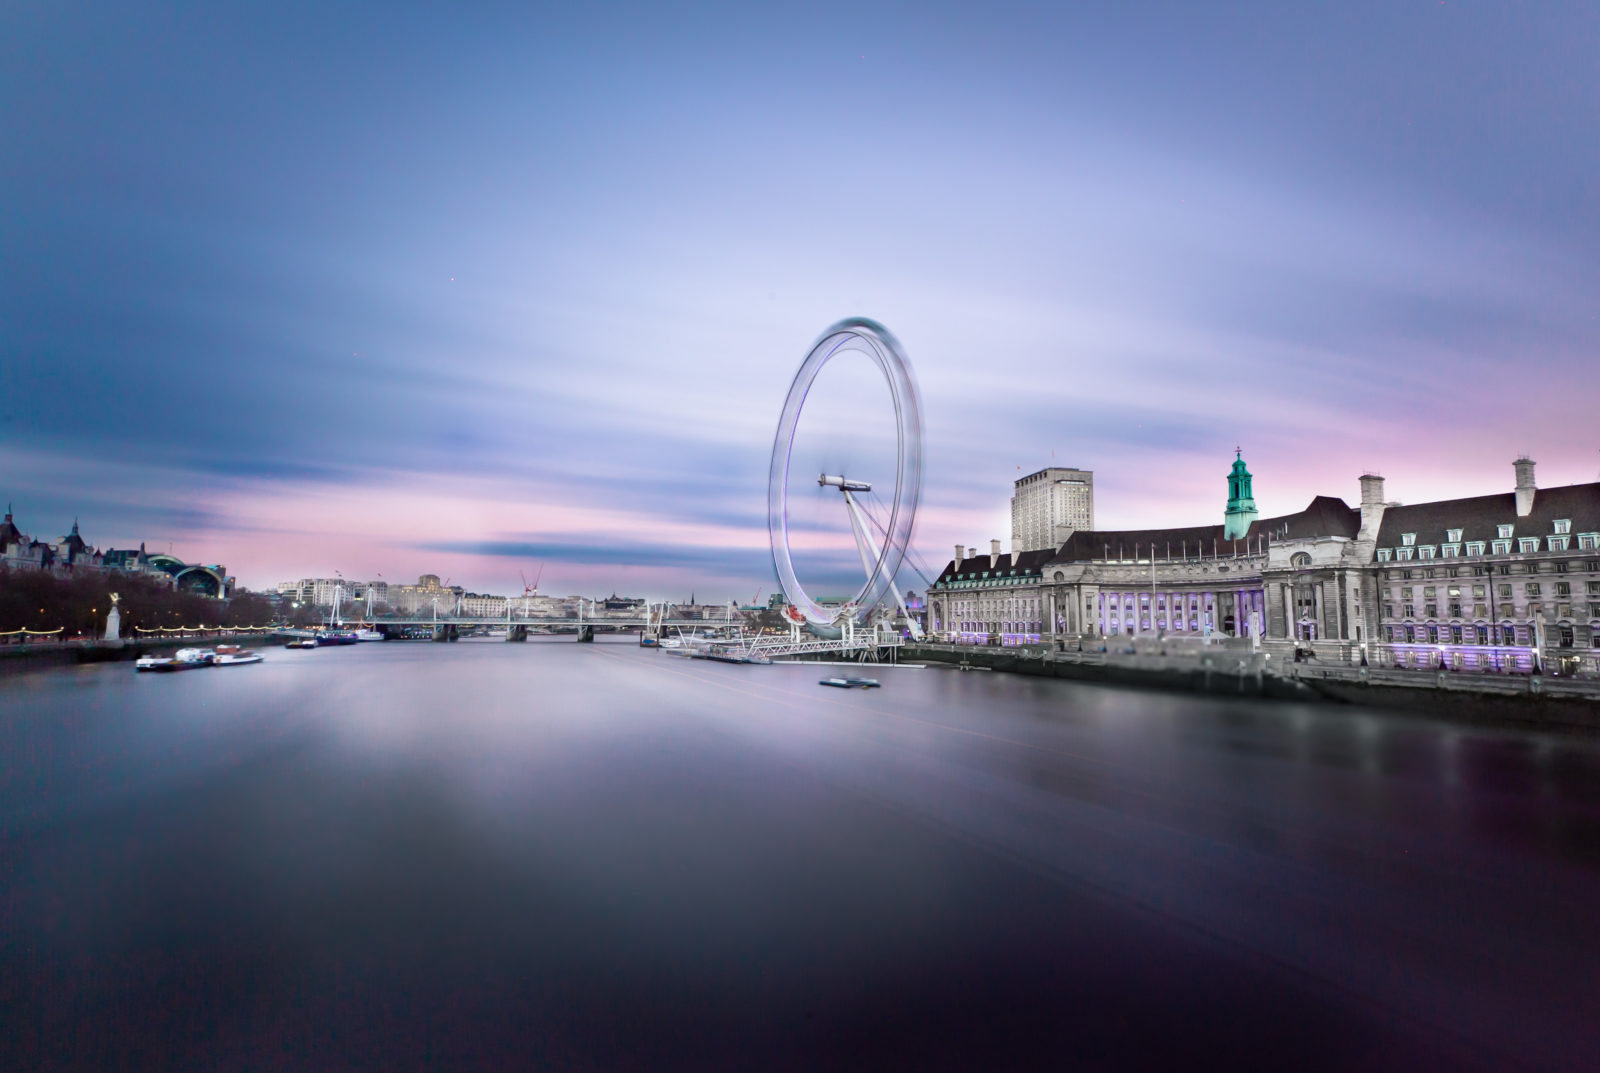 clounds movements over london eye